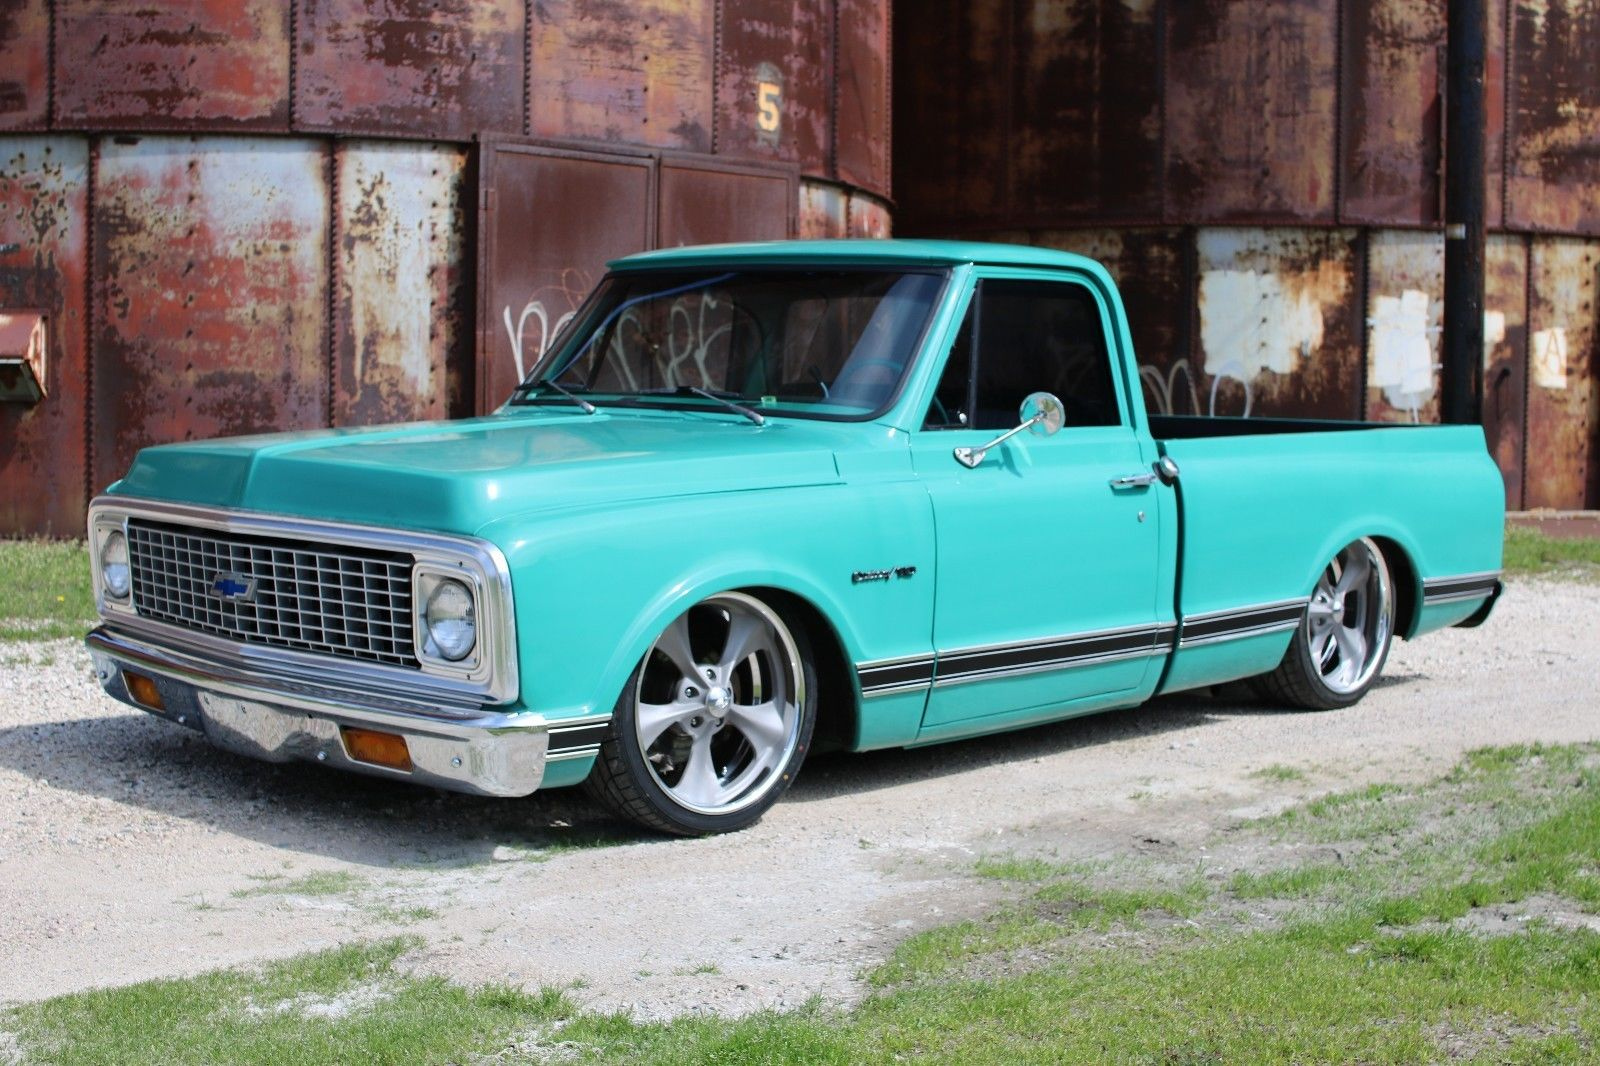 Rust Free 1971 Chevrolet C 10 In Mint Condition For Sale